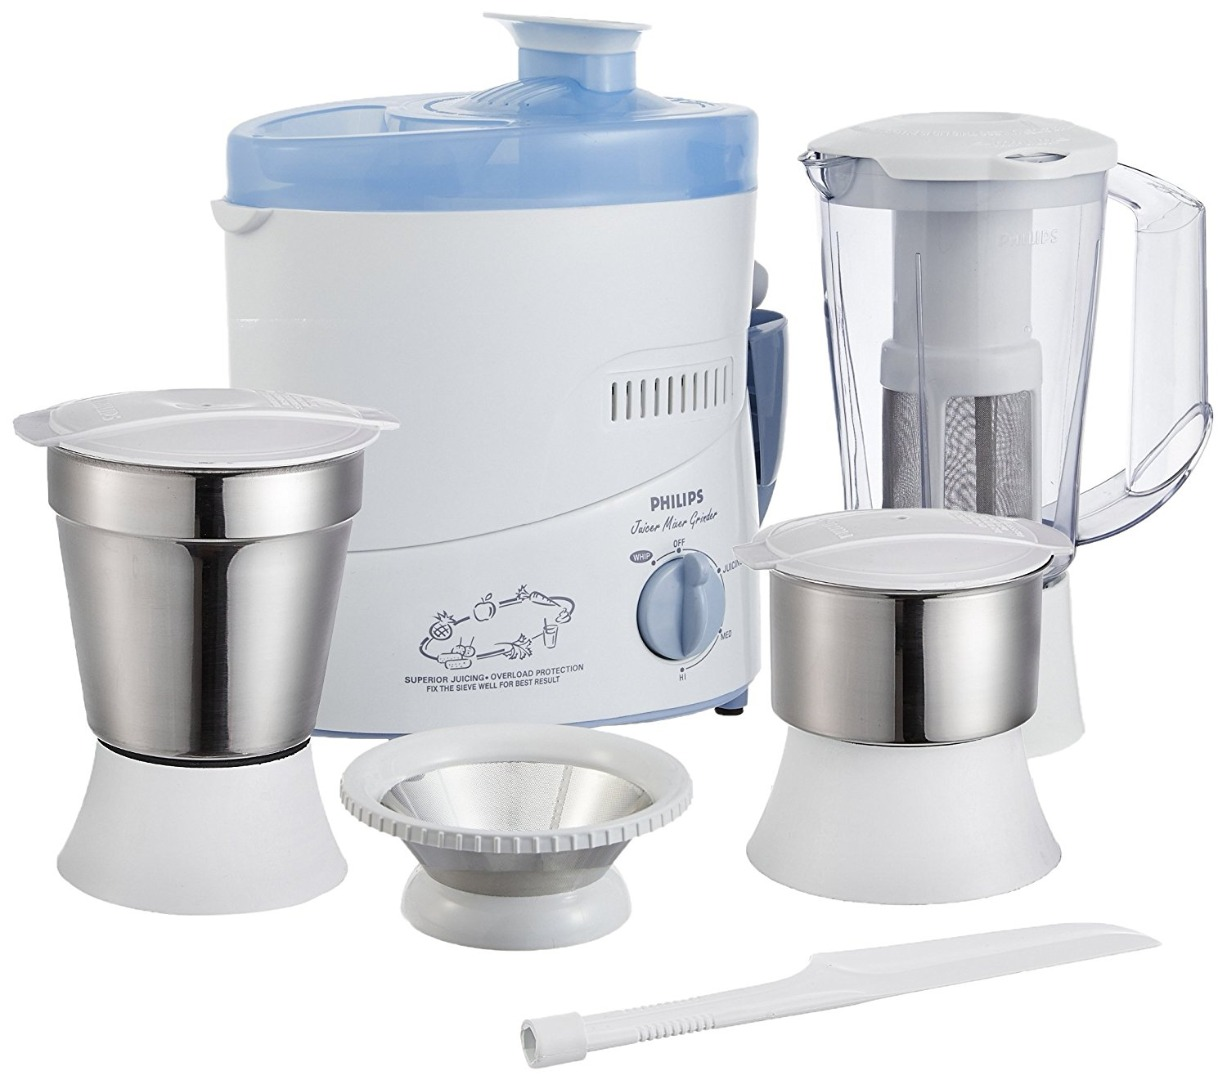 34e3f9579 Philips HL1632 3 Jars 500W Juicer Mixer Grinder Coupons  Product ...